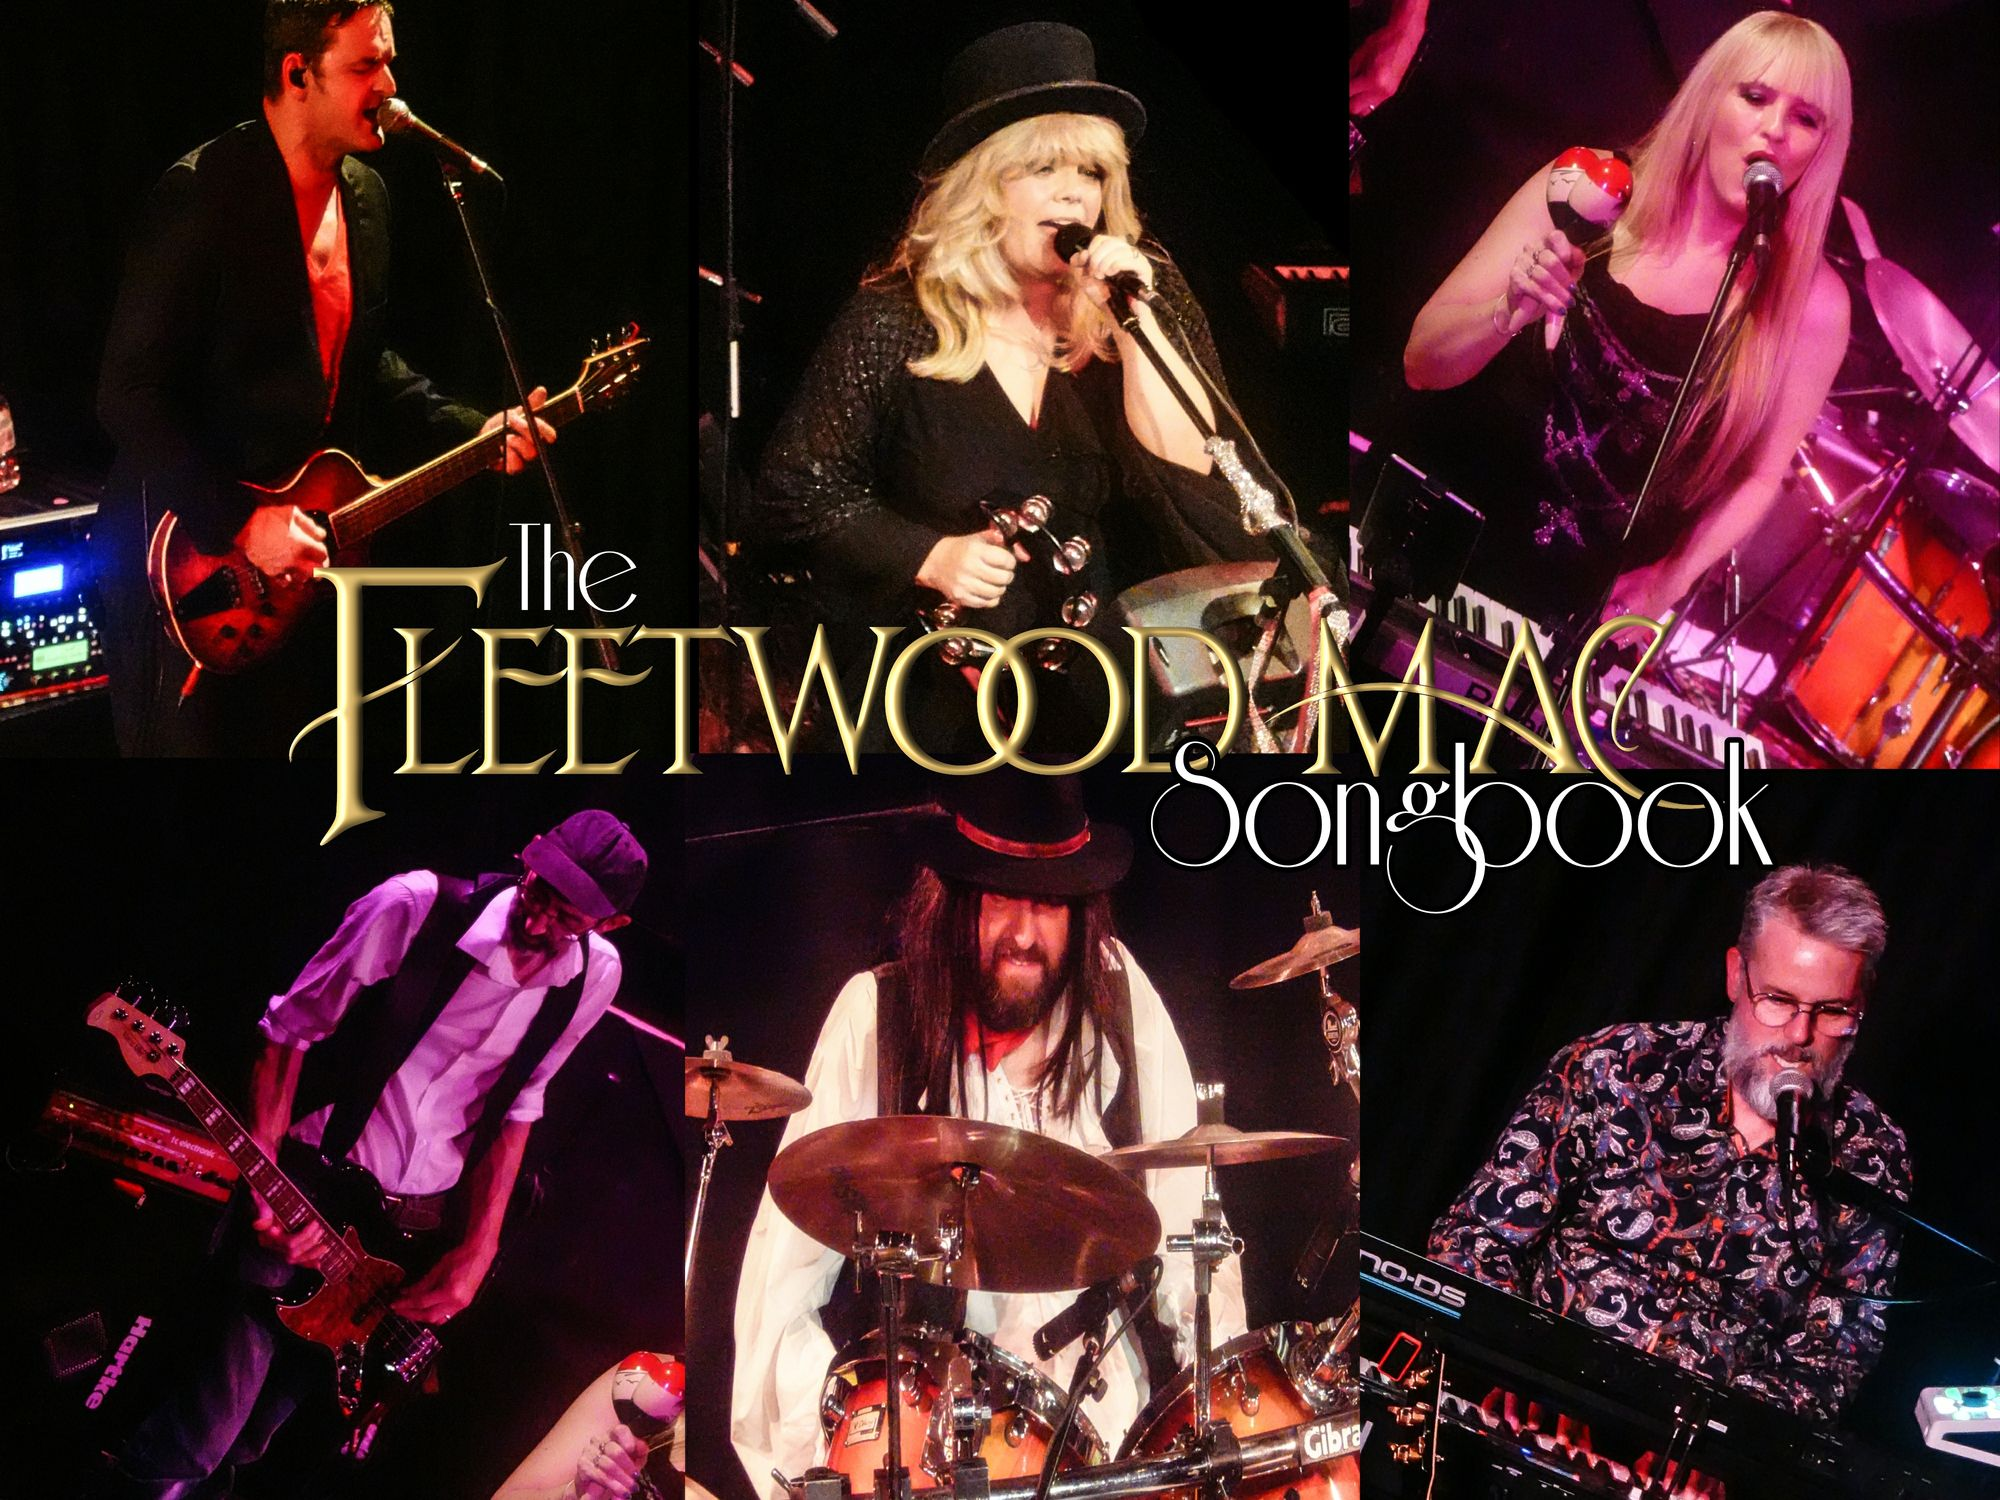 Fleetwood Mac Songbook at St Ives September Festival